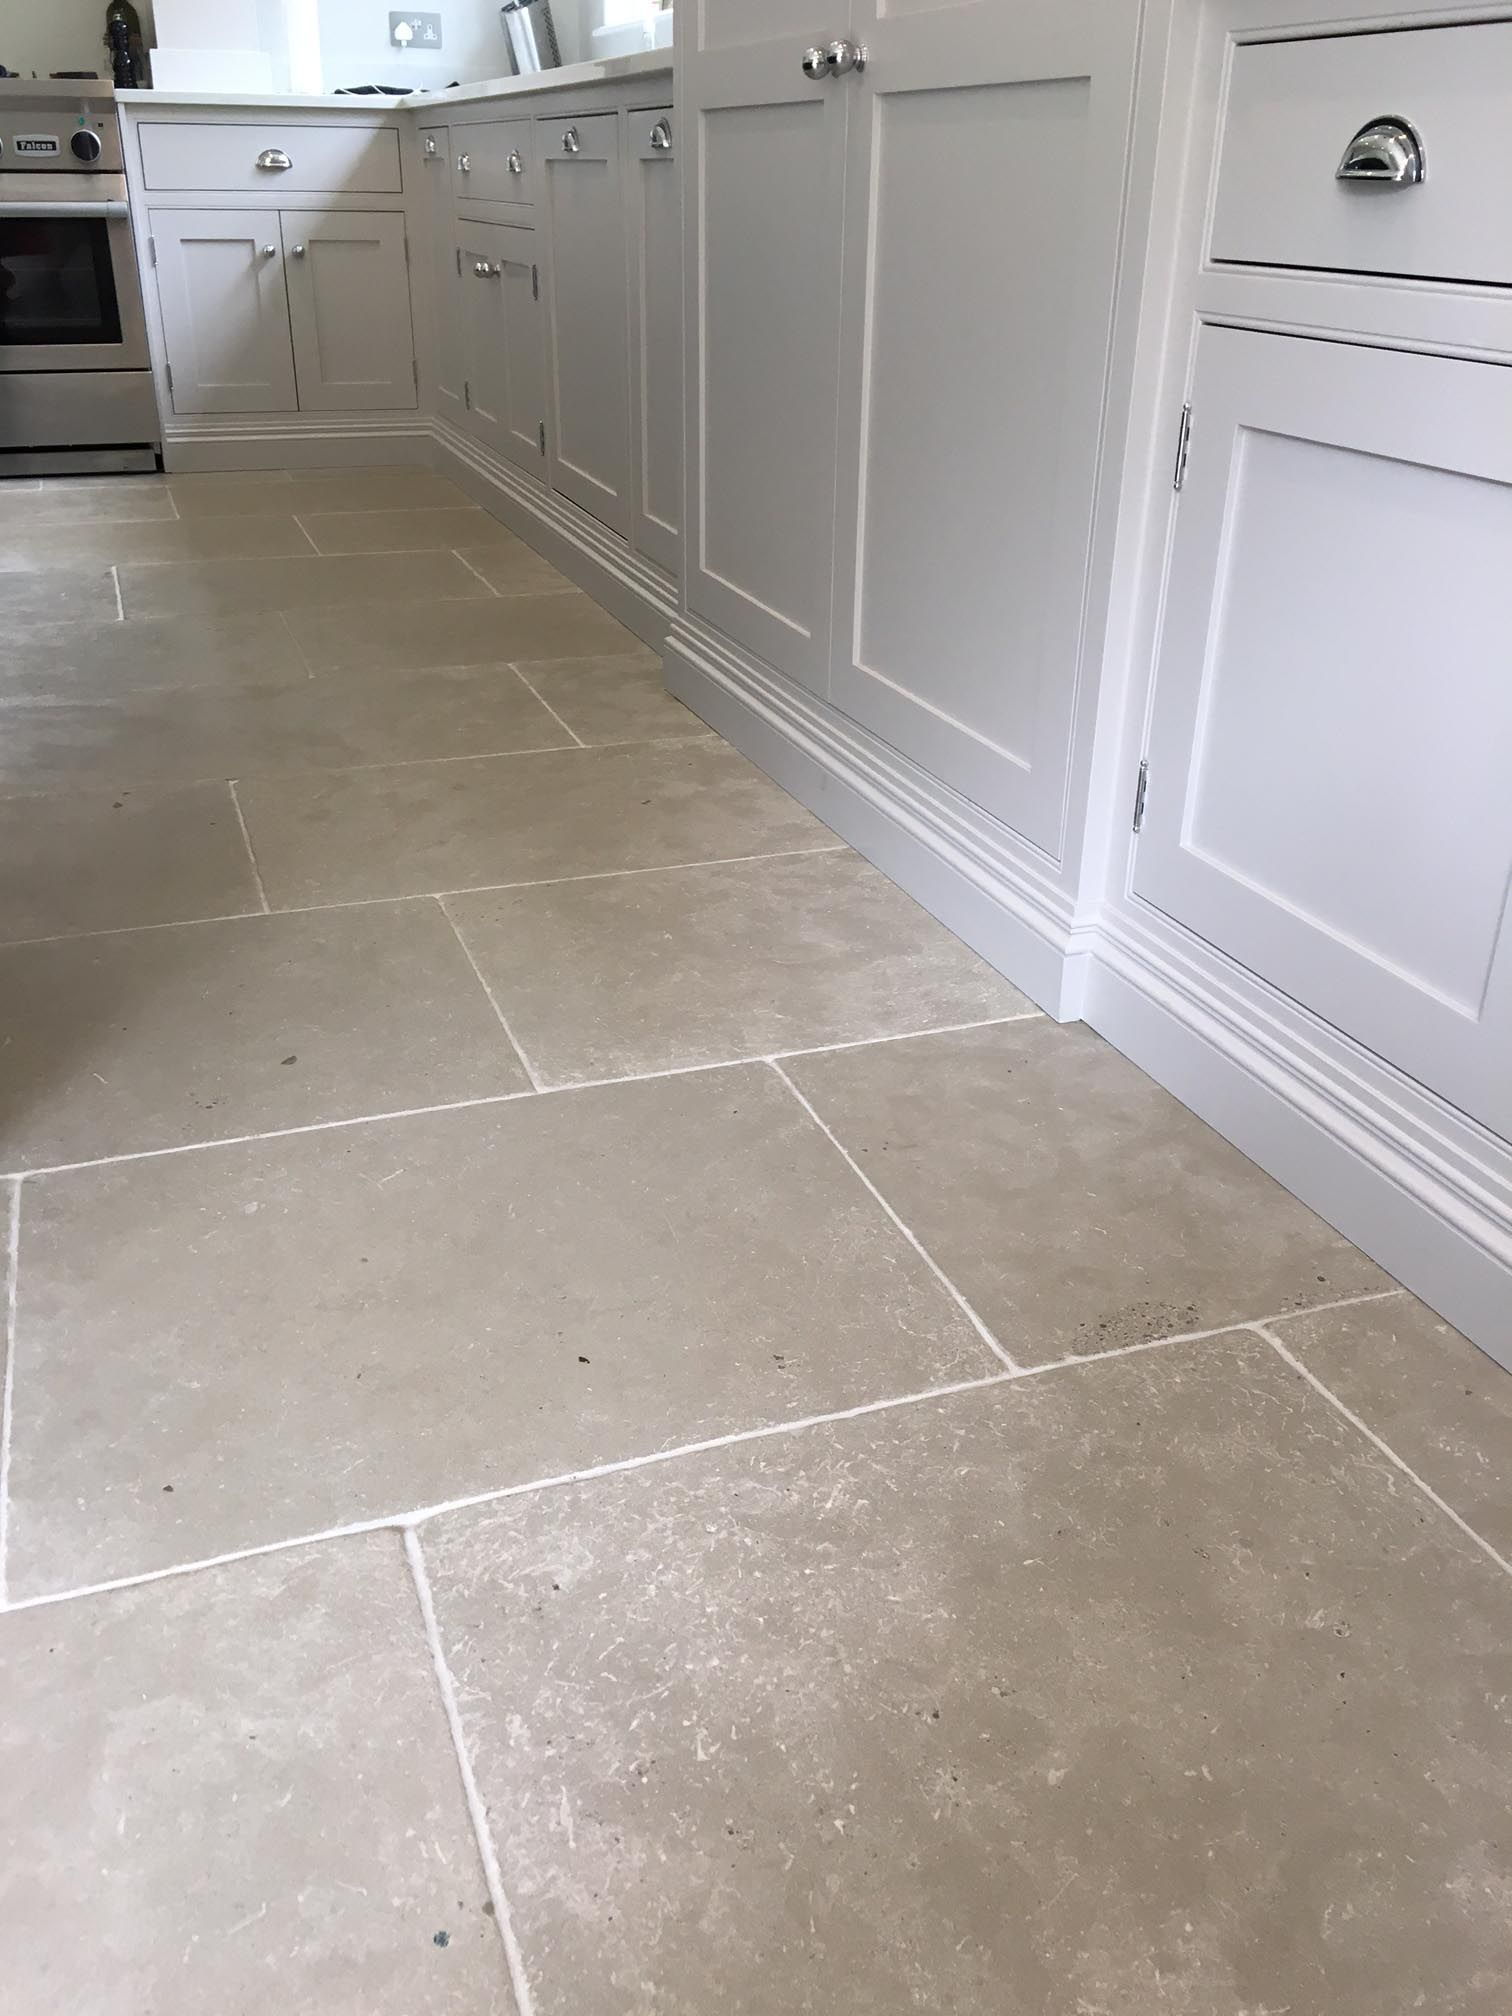 9 kitchen flooring ideas paris grey kitchen floors and surrey paris grey limestone tiles for a durable kitchen floor light grey toned interior and exterior stone flooring image from residential property in surrey uk dailygadgetfo Images